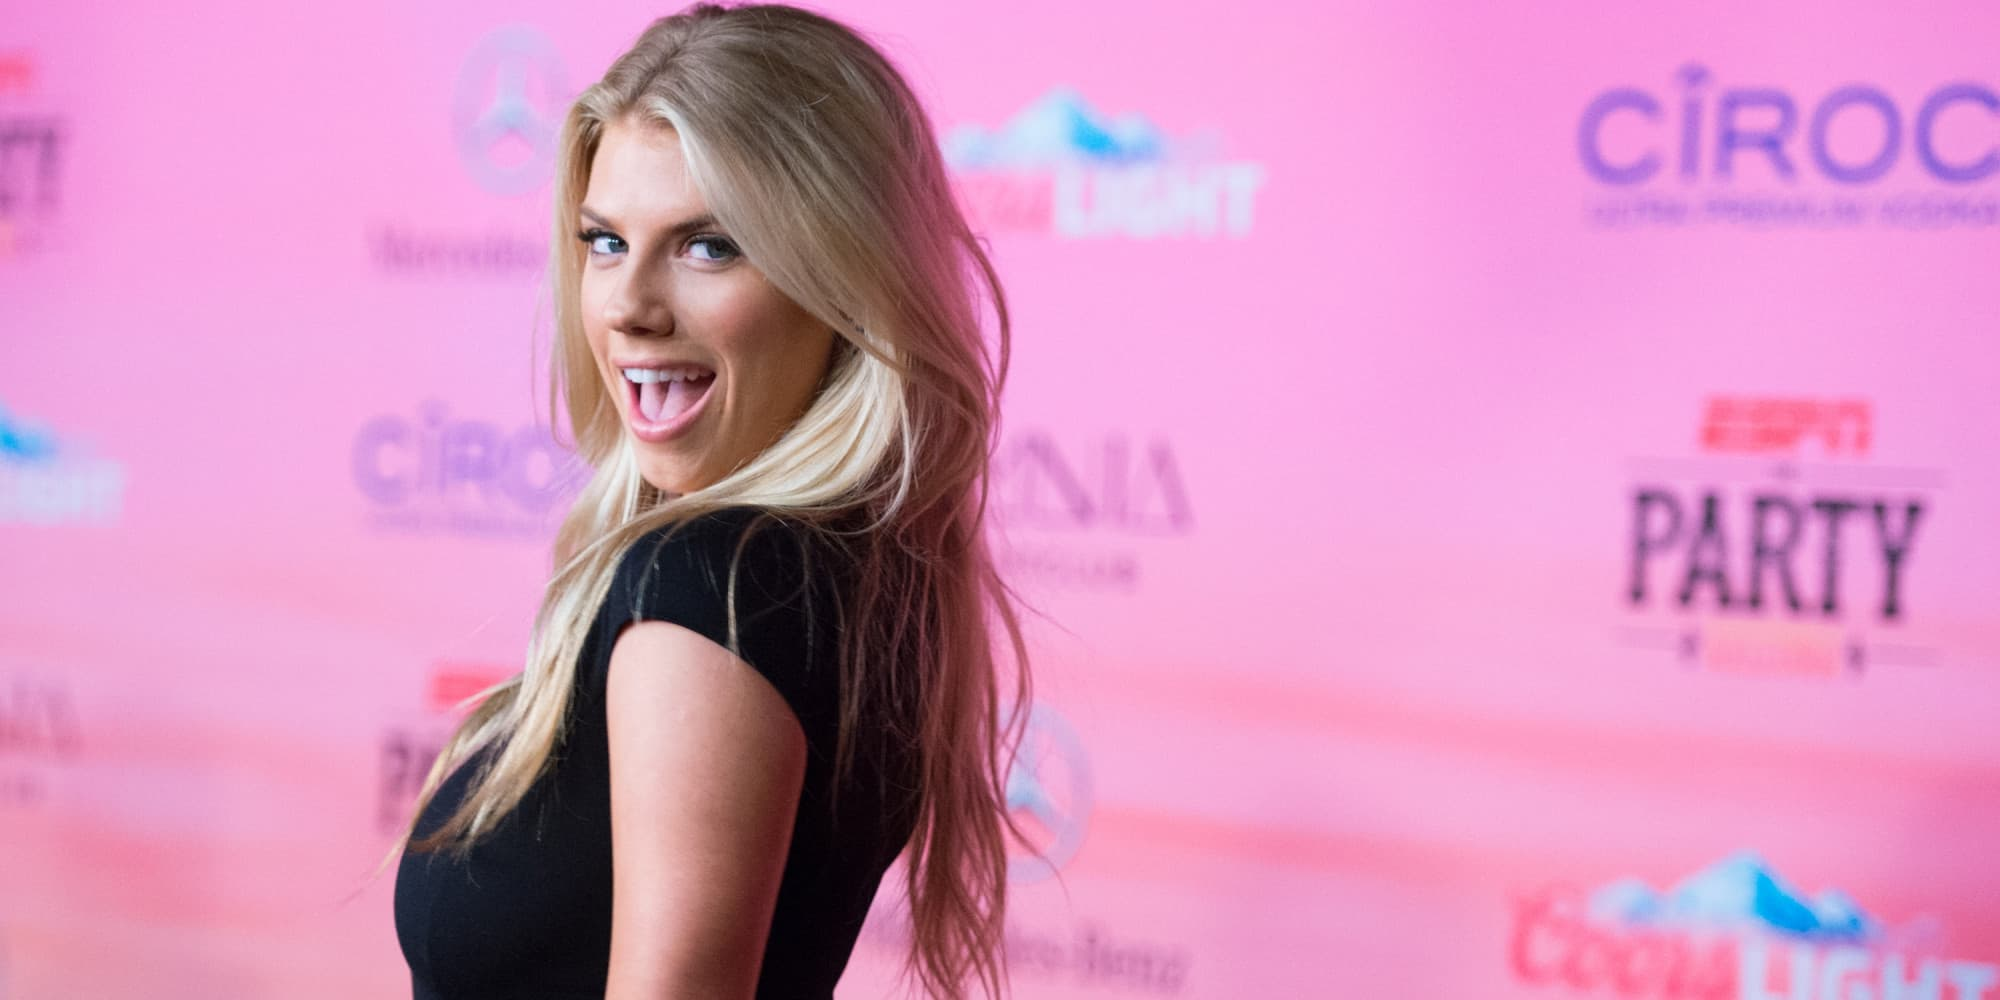 Charlotte Mckinney Funny Wallpapers 1080p